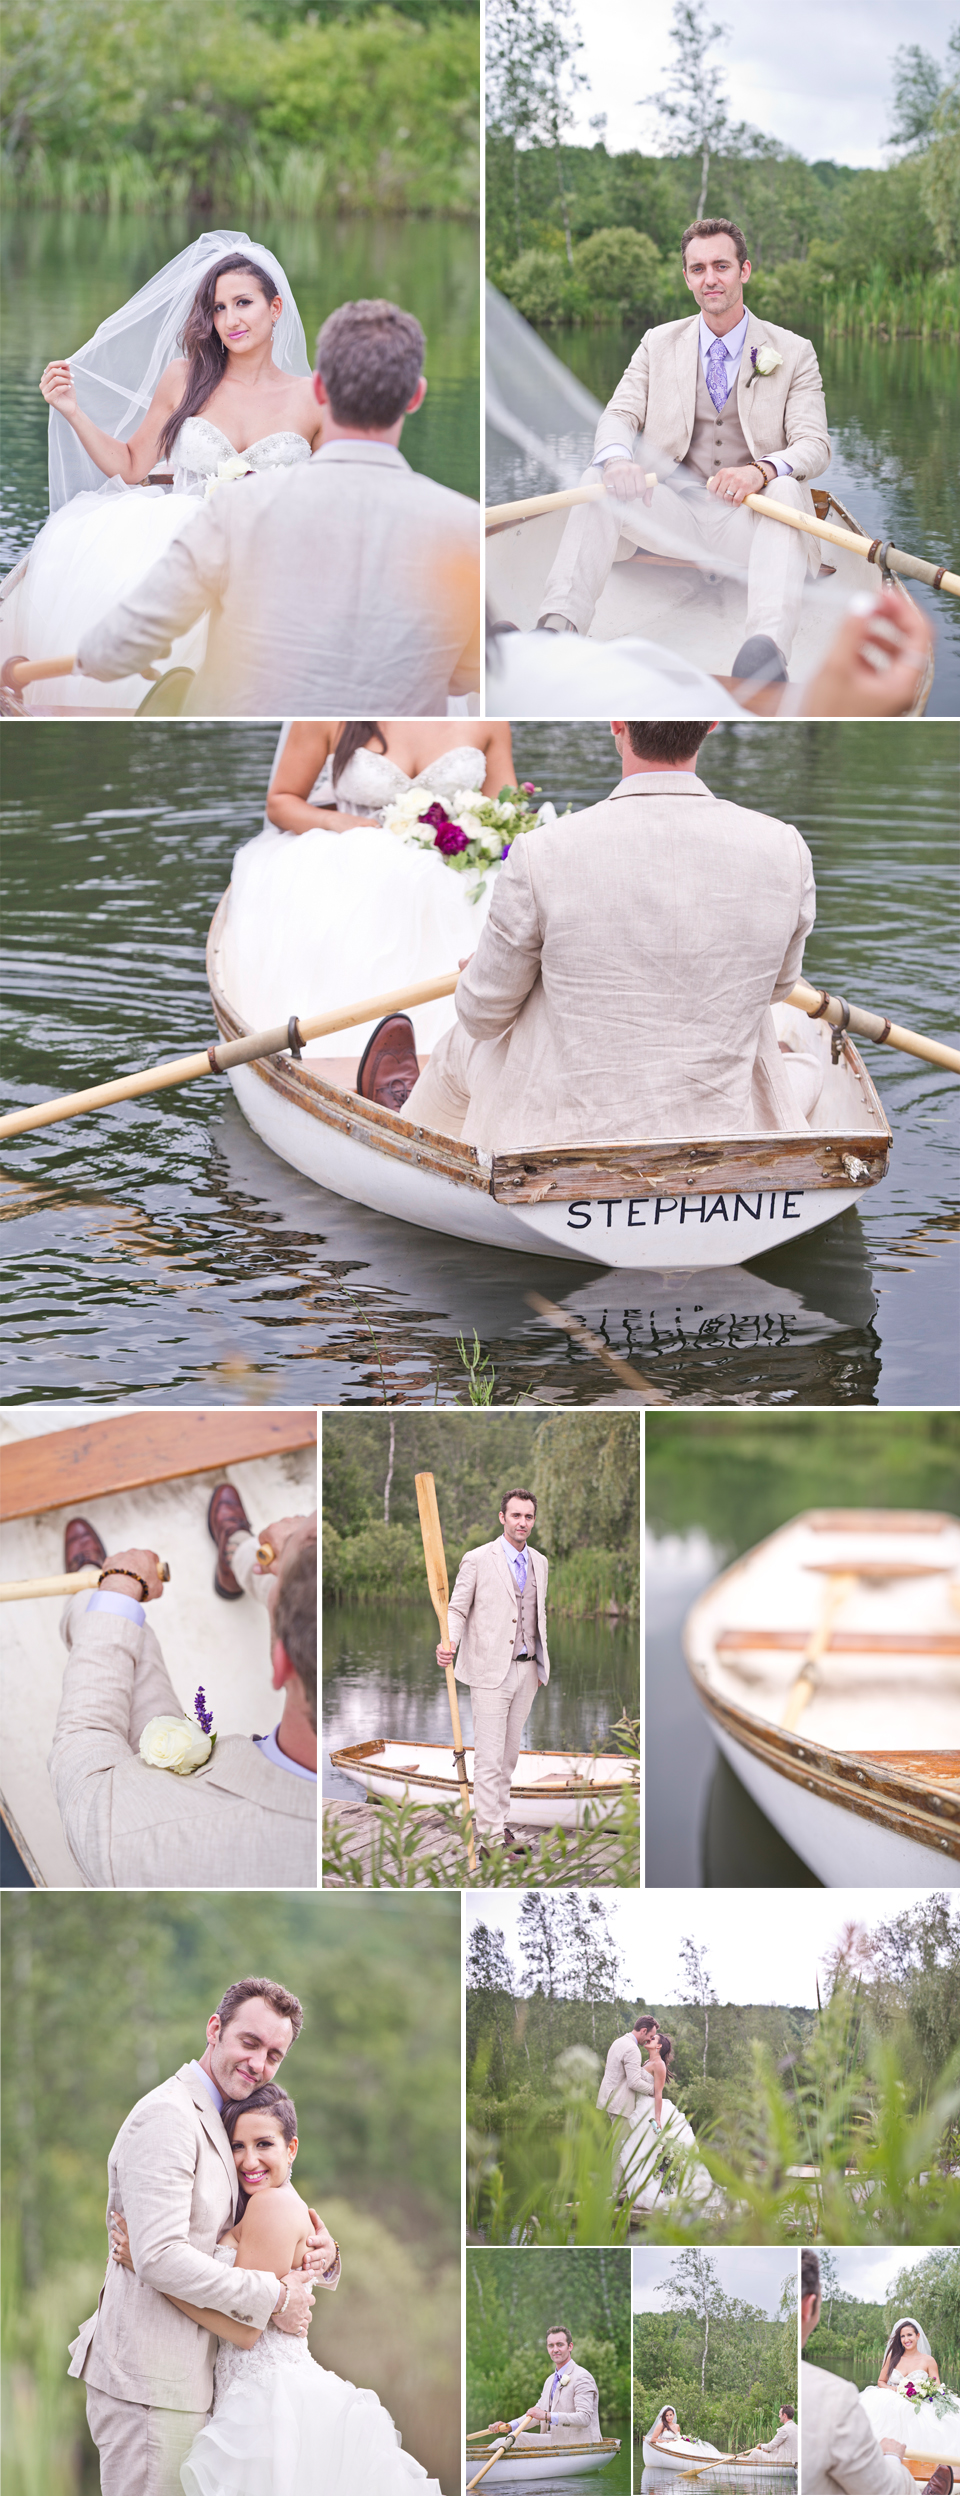 Montreal Wedding Photographer | Joie de Lavande | Knowlton | Lac Brome Quebec | LMP Wedding Photography & Videography